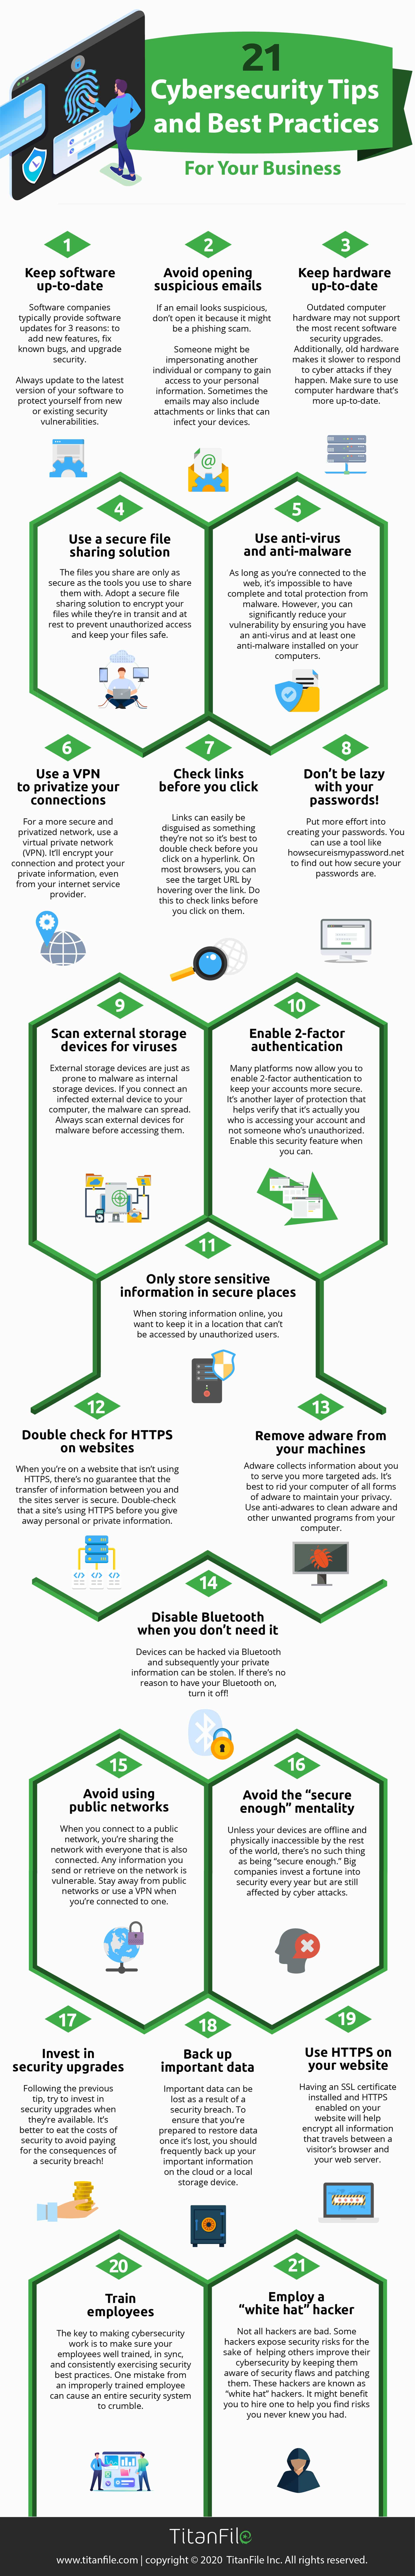 Cybersecurity tips and best practices infographic 2020